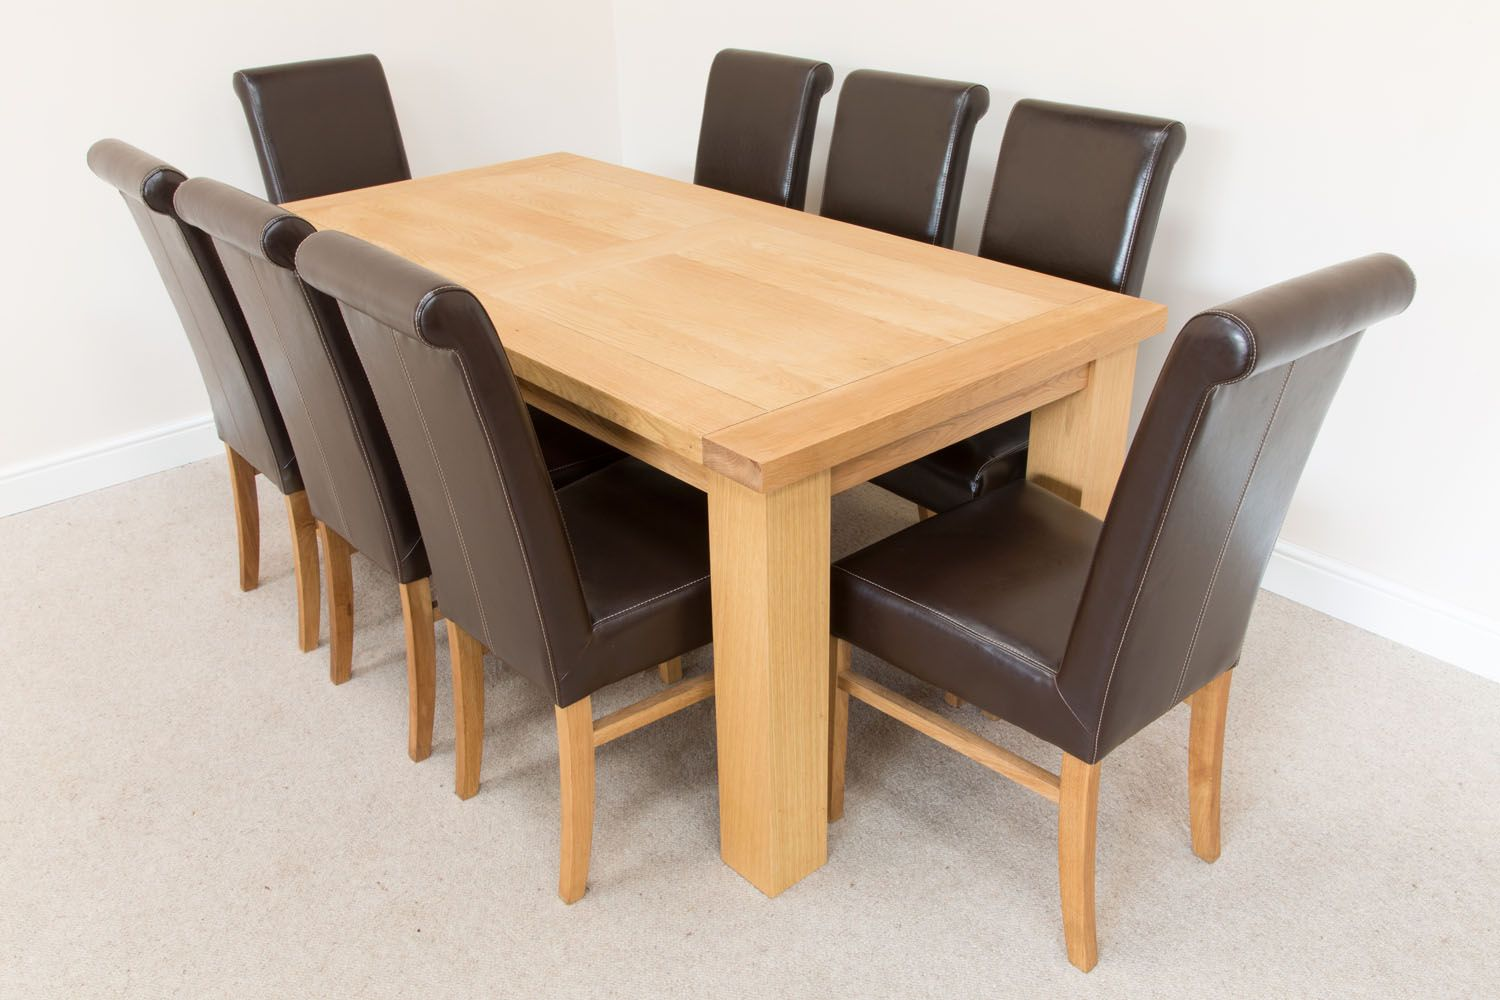 18m Riga Oak Dining Table 8 Emperor Brown Leather Chairs